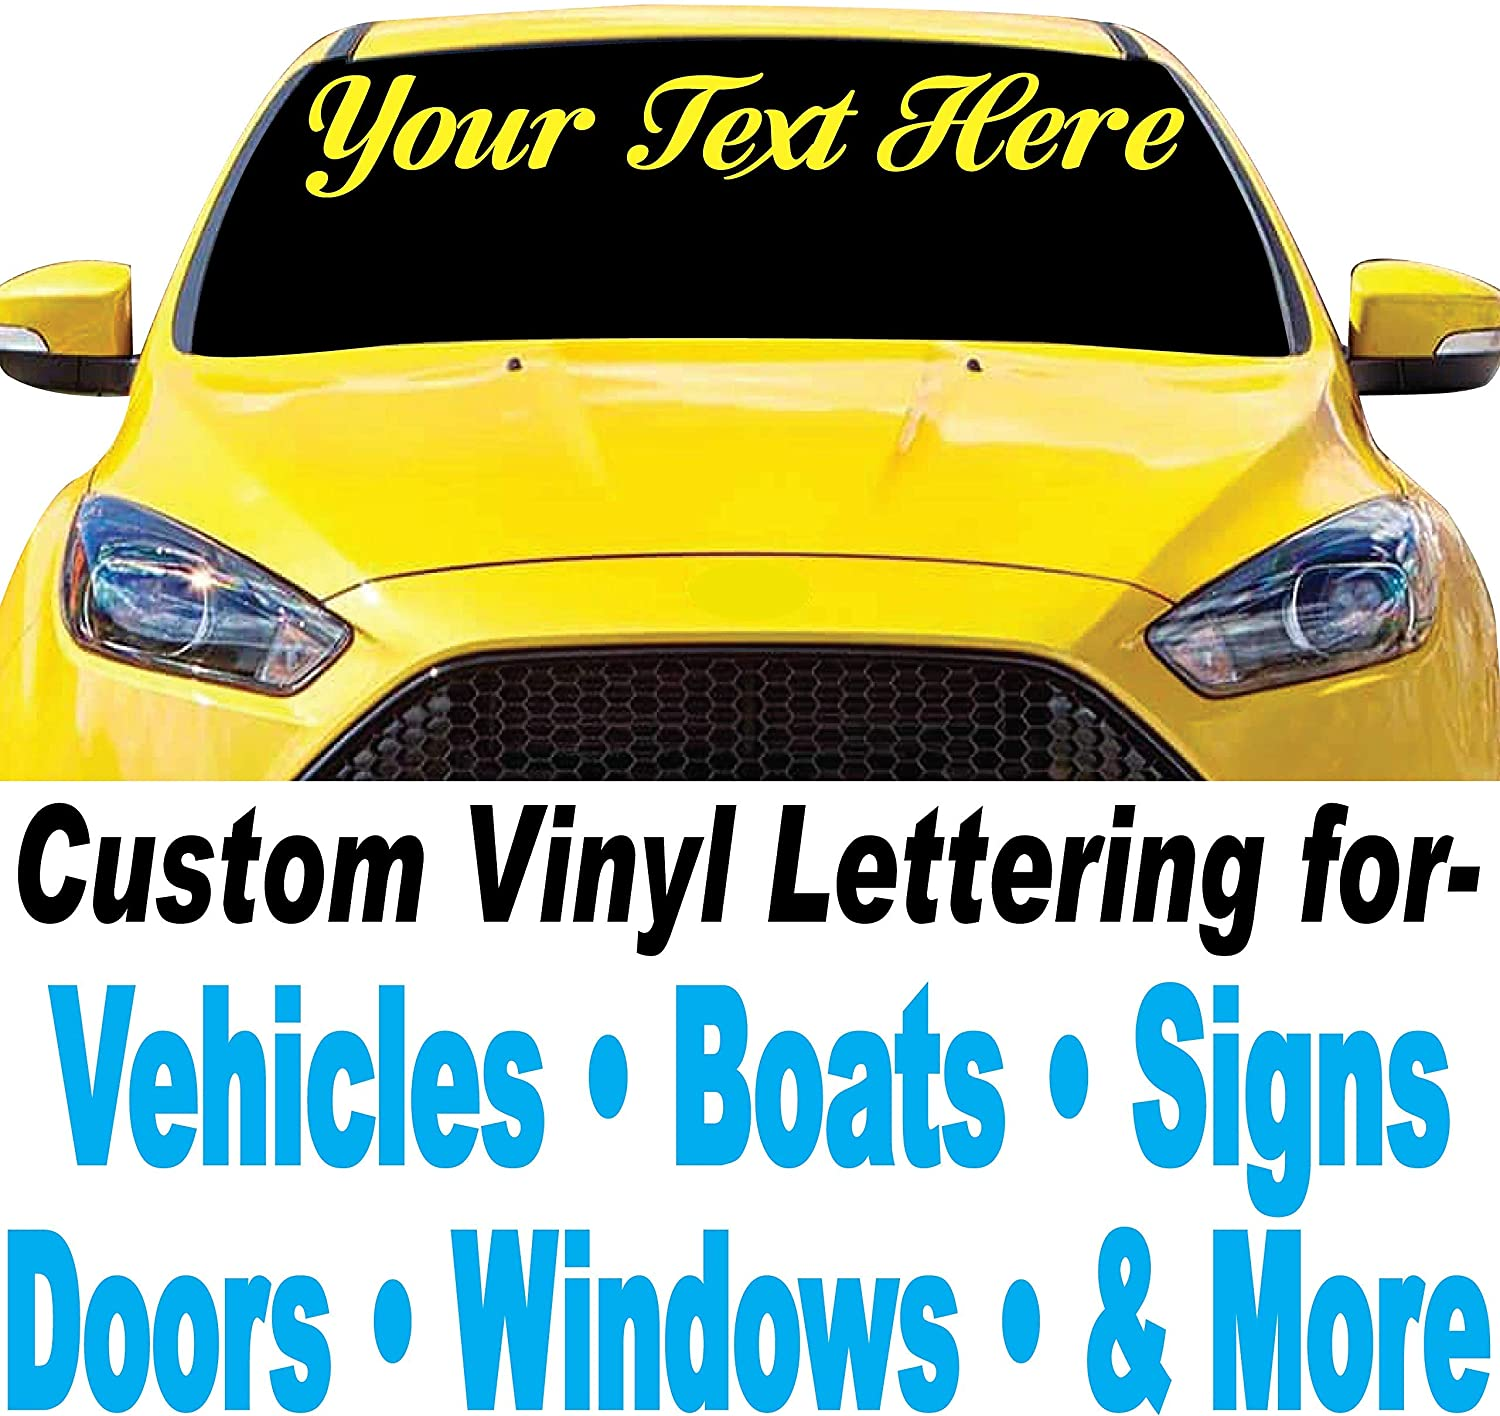 "4"" high Custom Vinyl Lettering - Design Your Own Decals, Stickers - Letters & Numbers for Cars, Trucks, Boats, Signs, Doors, Windows, and More"